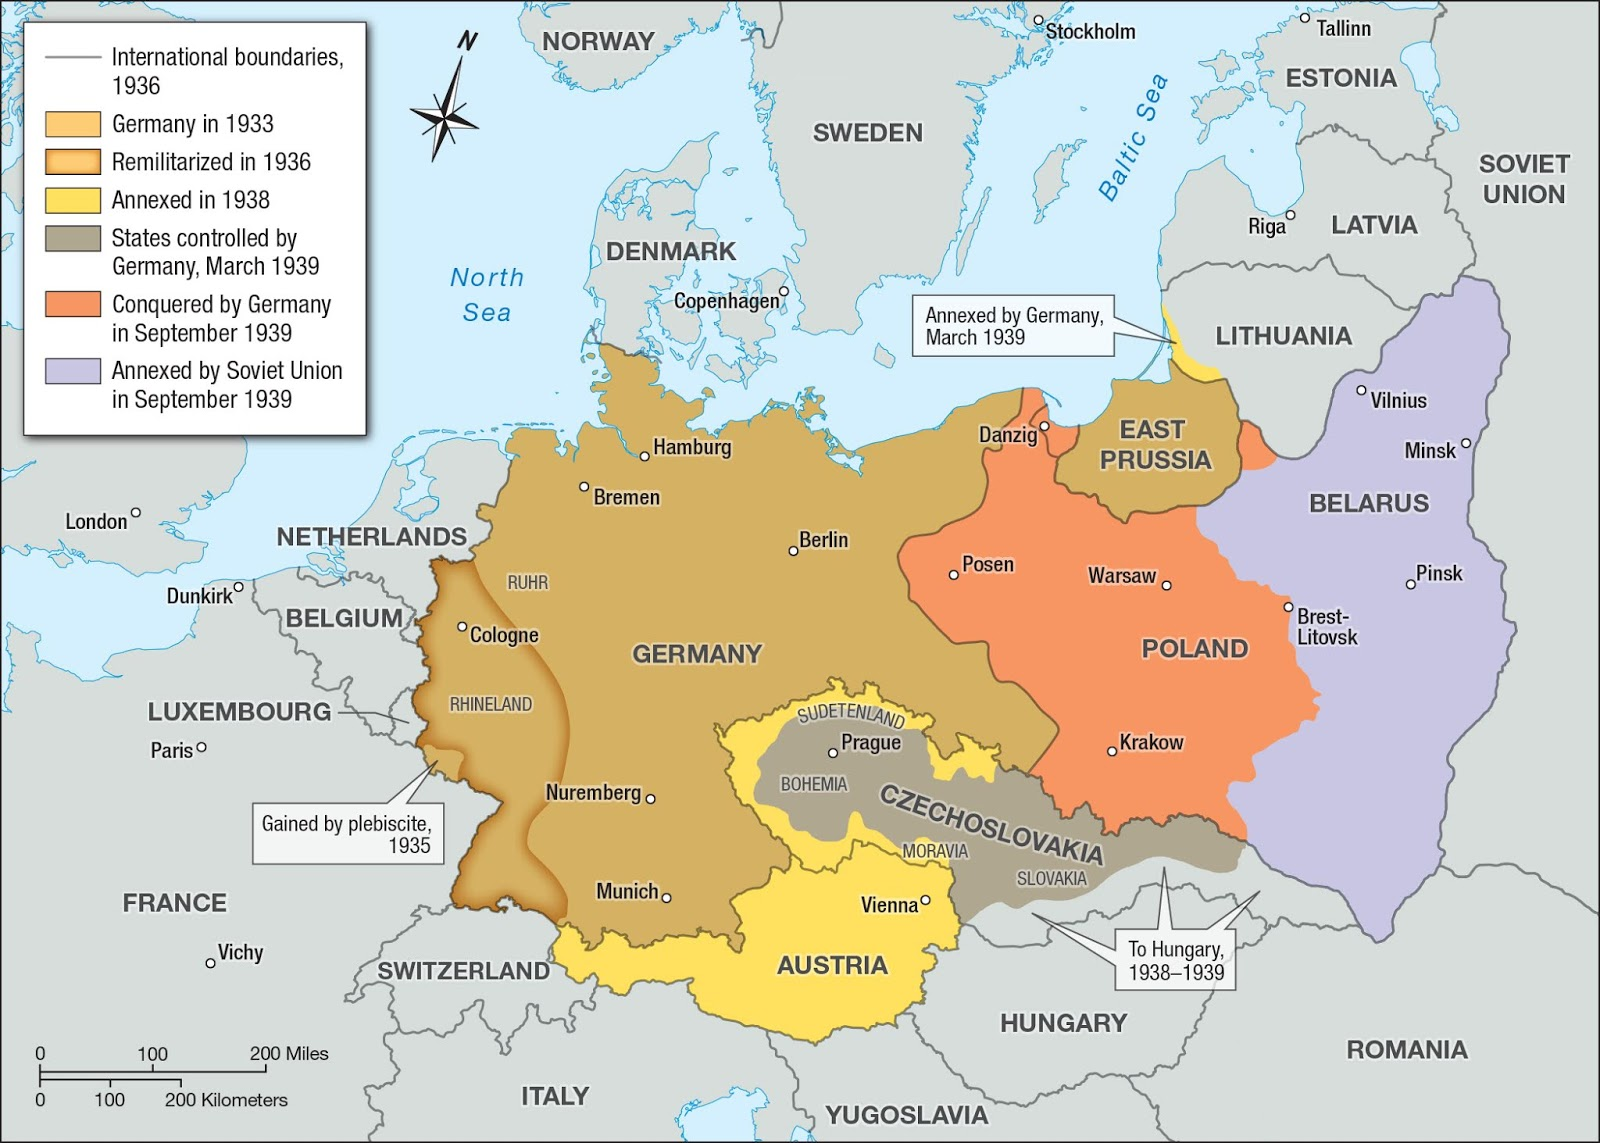 Map Of Germany 1938.Baha I History April 25 On This Date In 1938 One Month